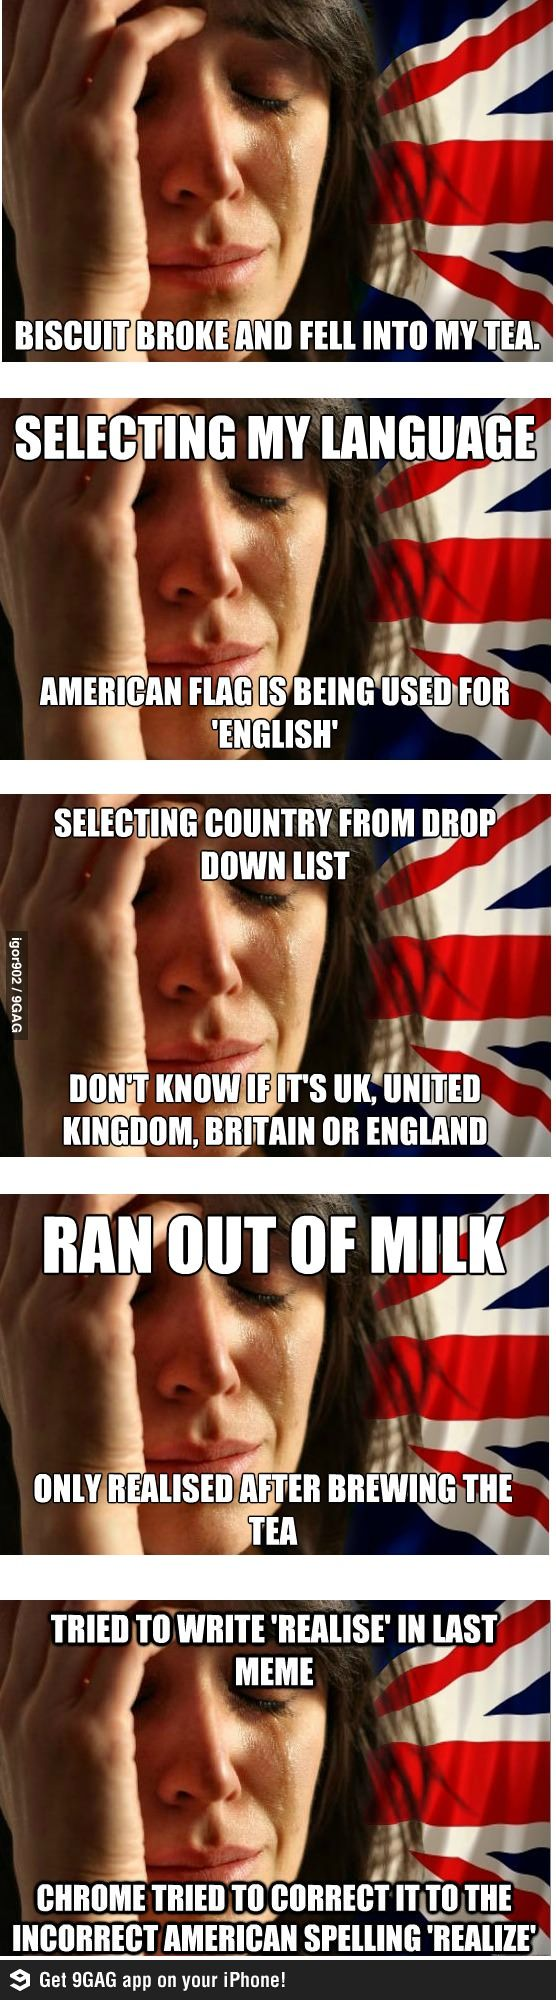 British First World Problems - the worrying thing is that people have genuinely said these things to me...